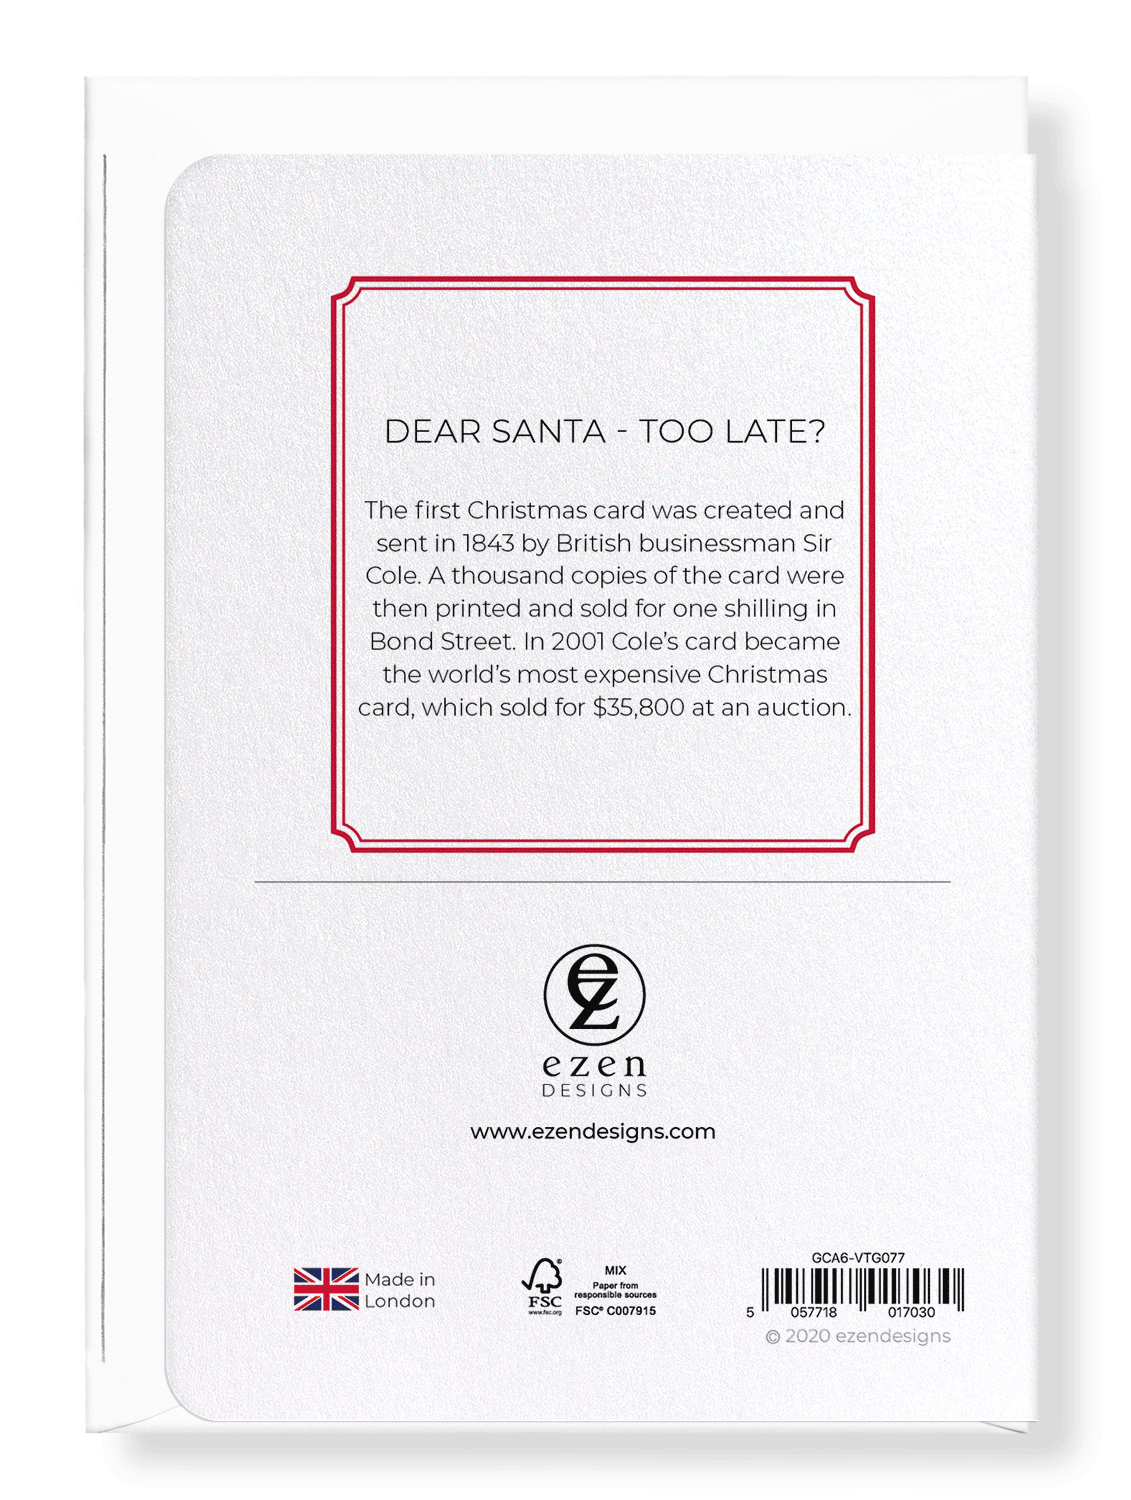 Ezen Designs - Dear santa - too late? - Greeting Card - Back